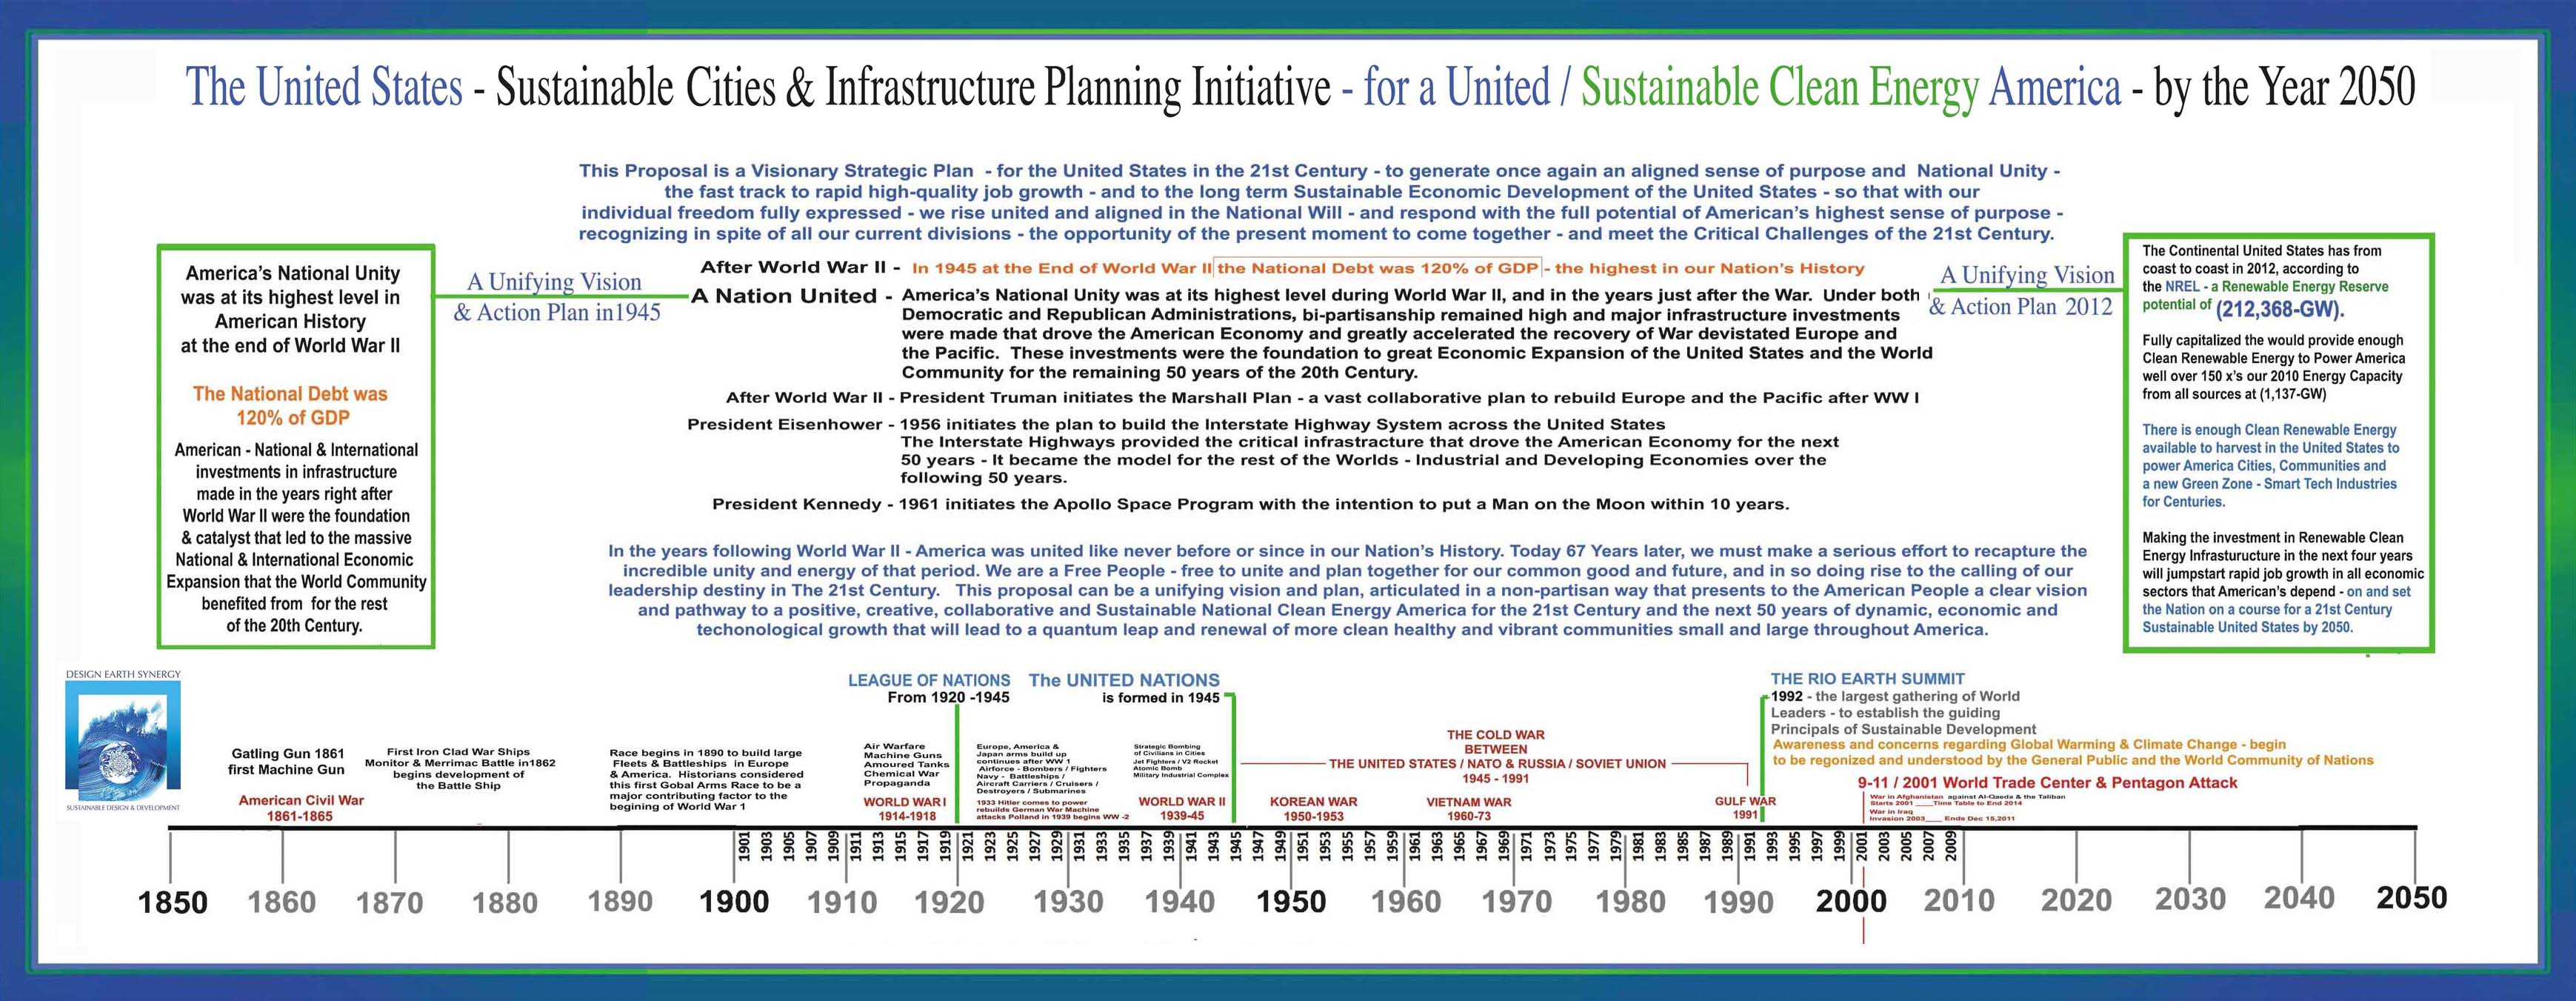 projects design earth synergy the above overview illustration panel of the national debt time line superimposed over democrat and republican administrations and summary of